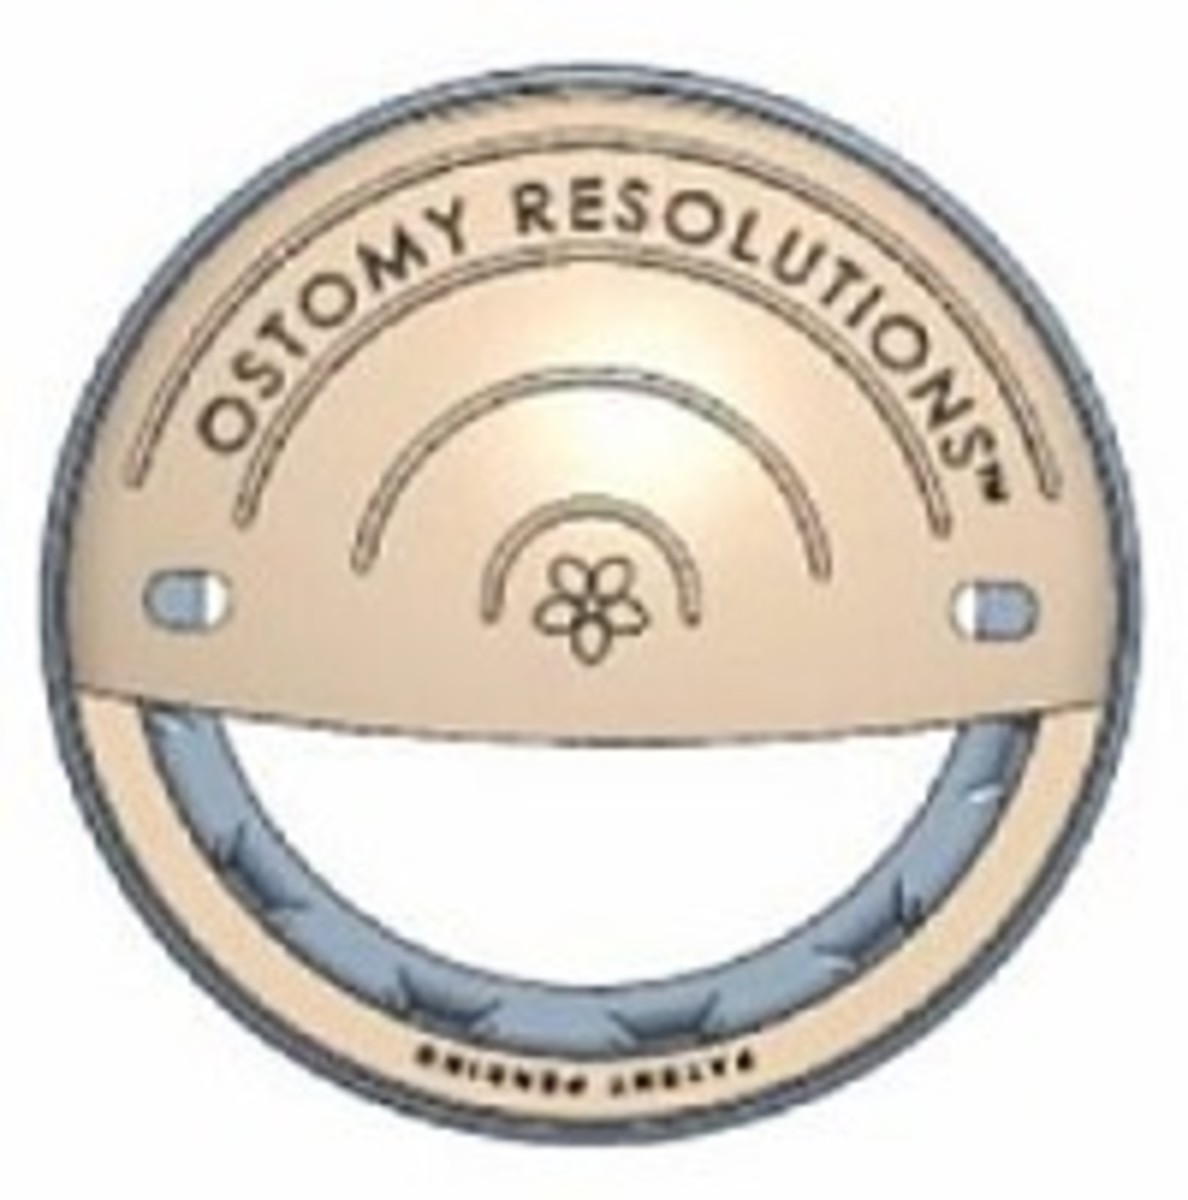 Ostomy Resolutions stoma guard